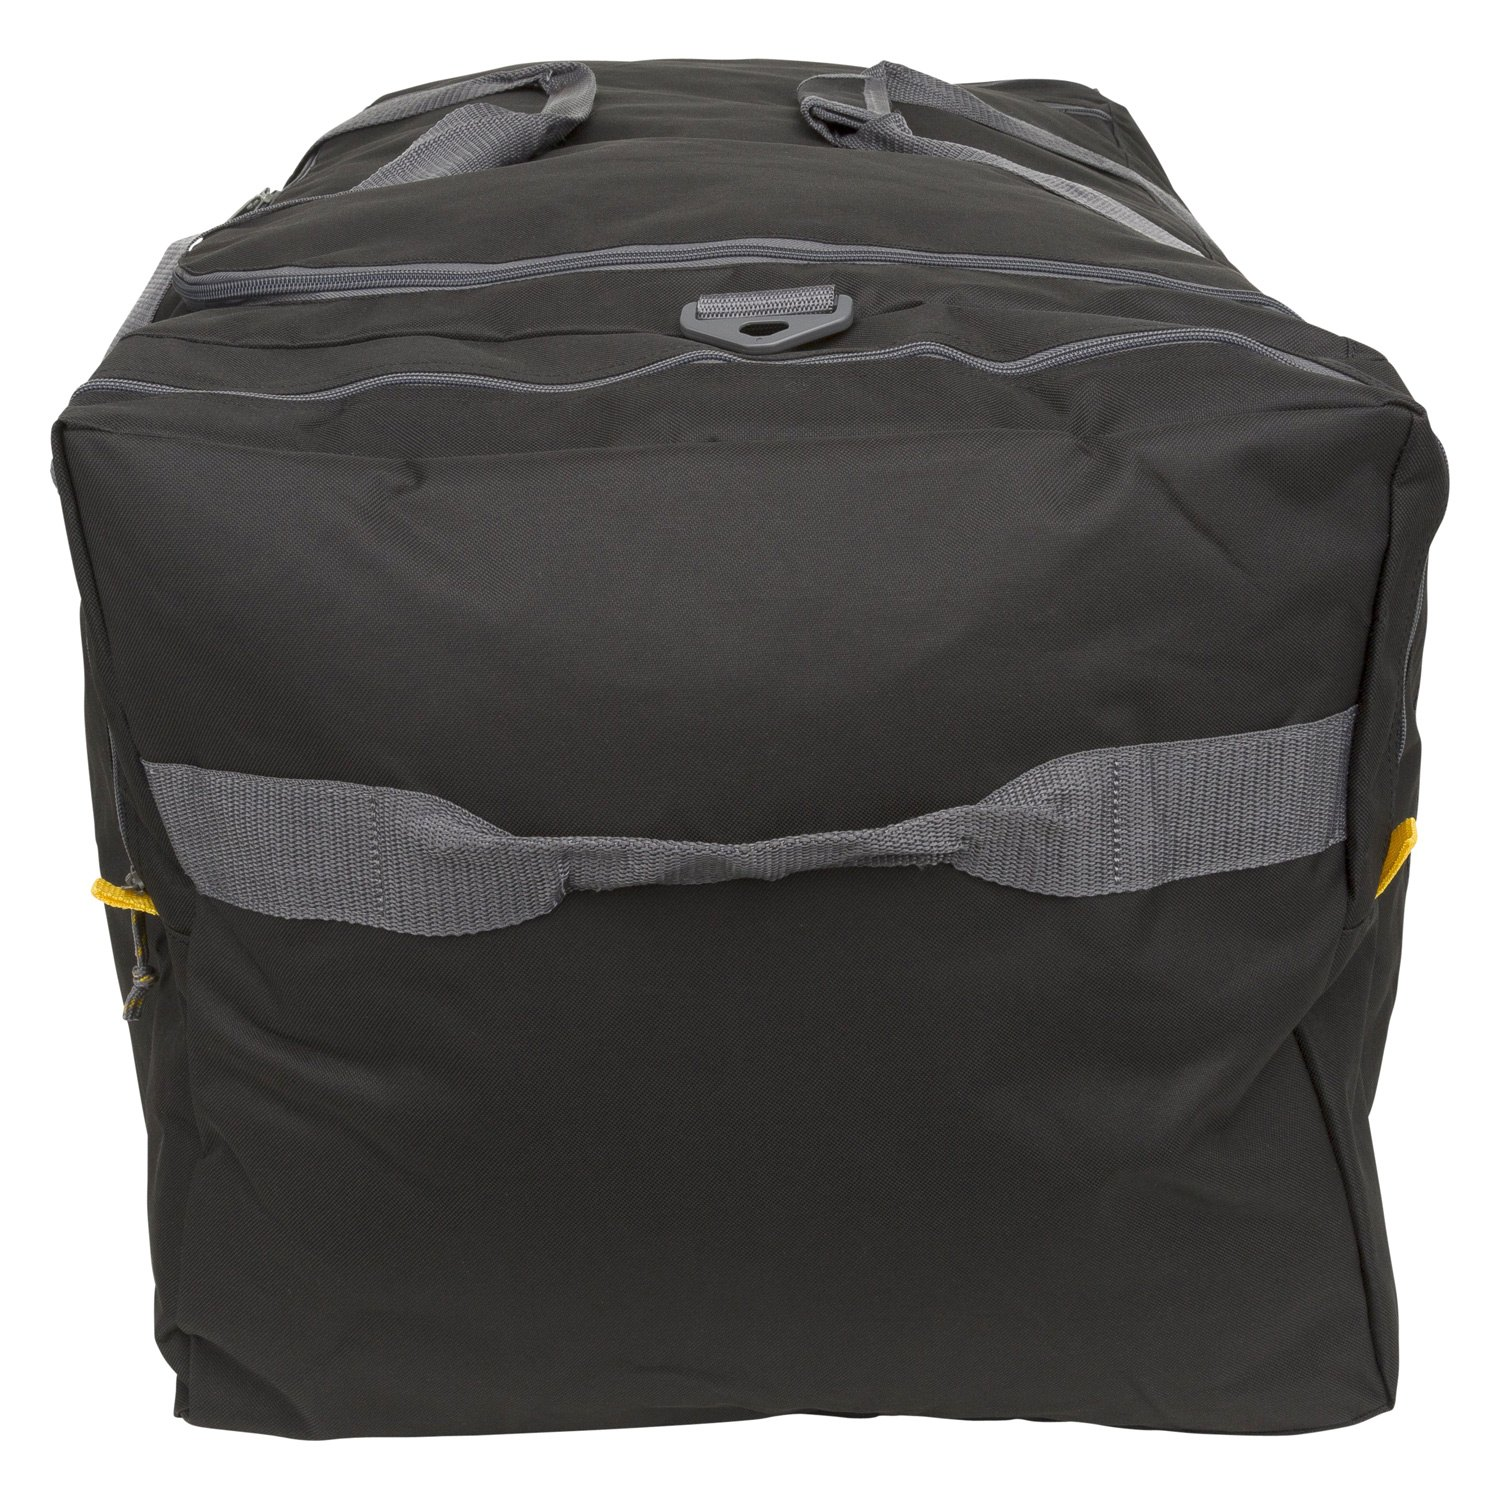 cf04d7f884 Outdoor Products® 253-008 - Mountain X-Large Duffle Bag ...